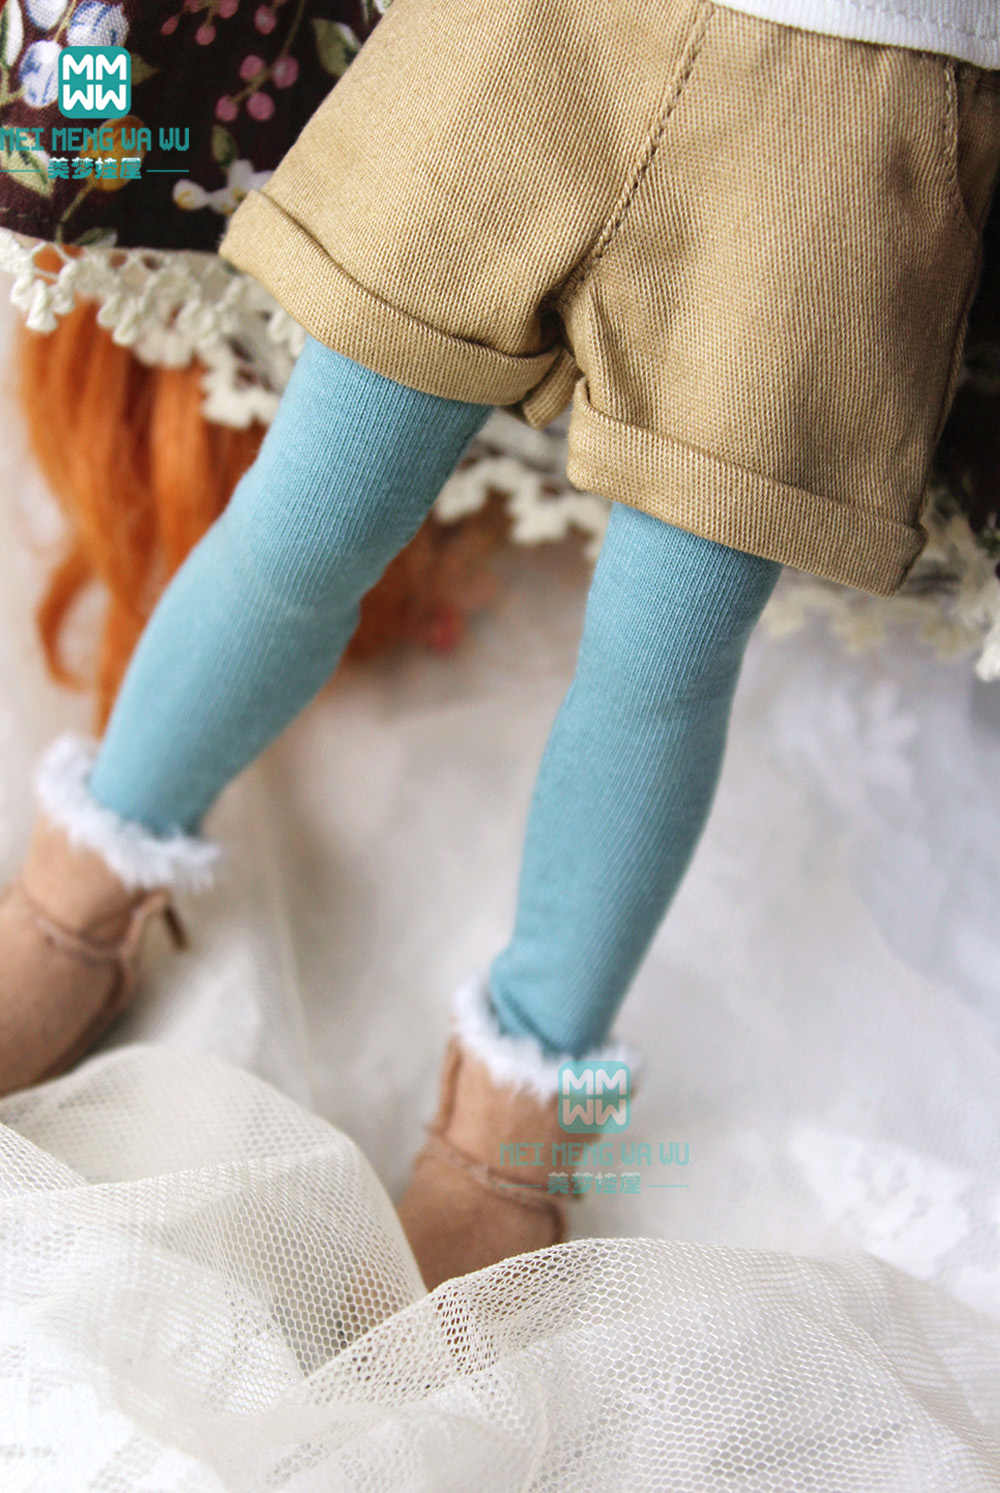 1 PCS Blyth poppenkleertjes fashion cuffed shorts zwart, denim, plaid, kaki voor 28-30 cm Blyth, Azone 1/6 pop